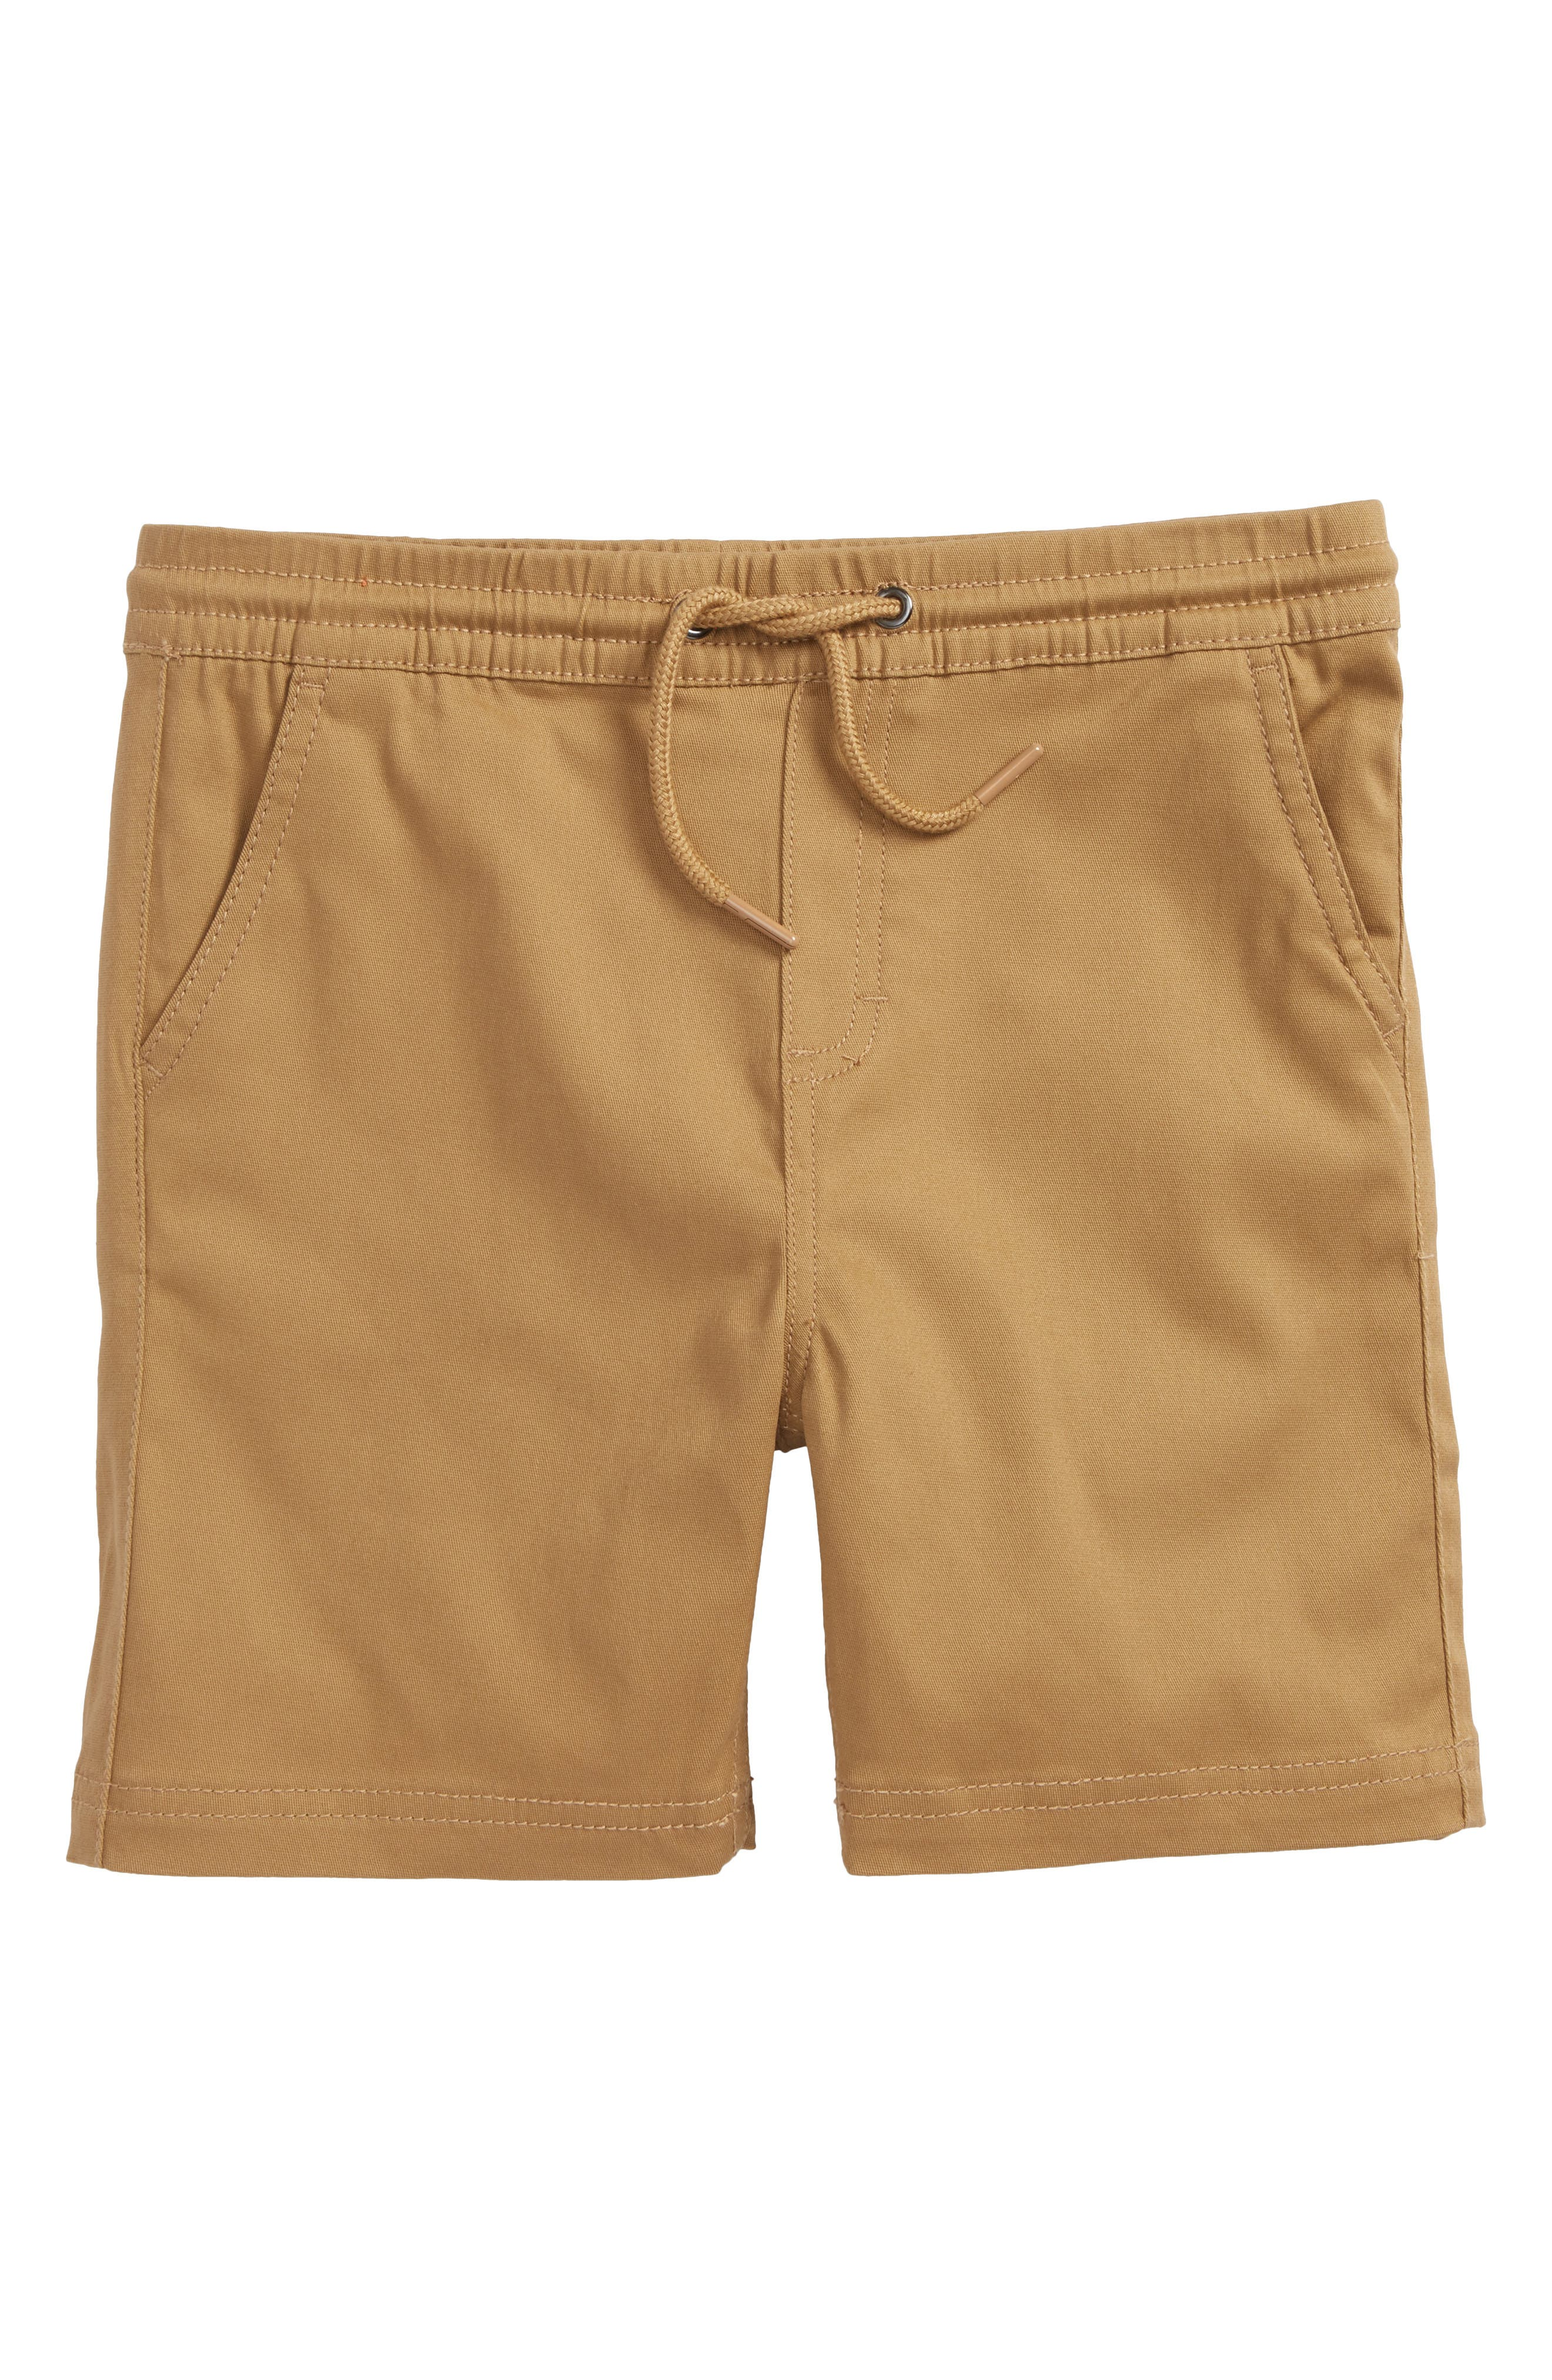 Daniel Stretch Twill Shorts,                         Main,                         color, Tan